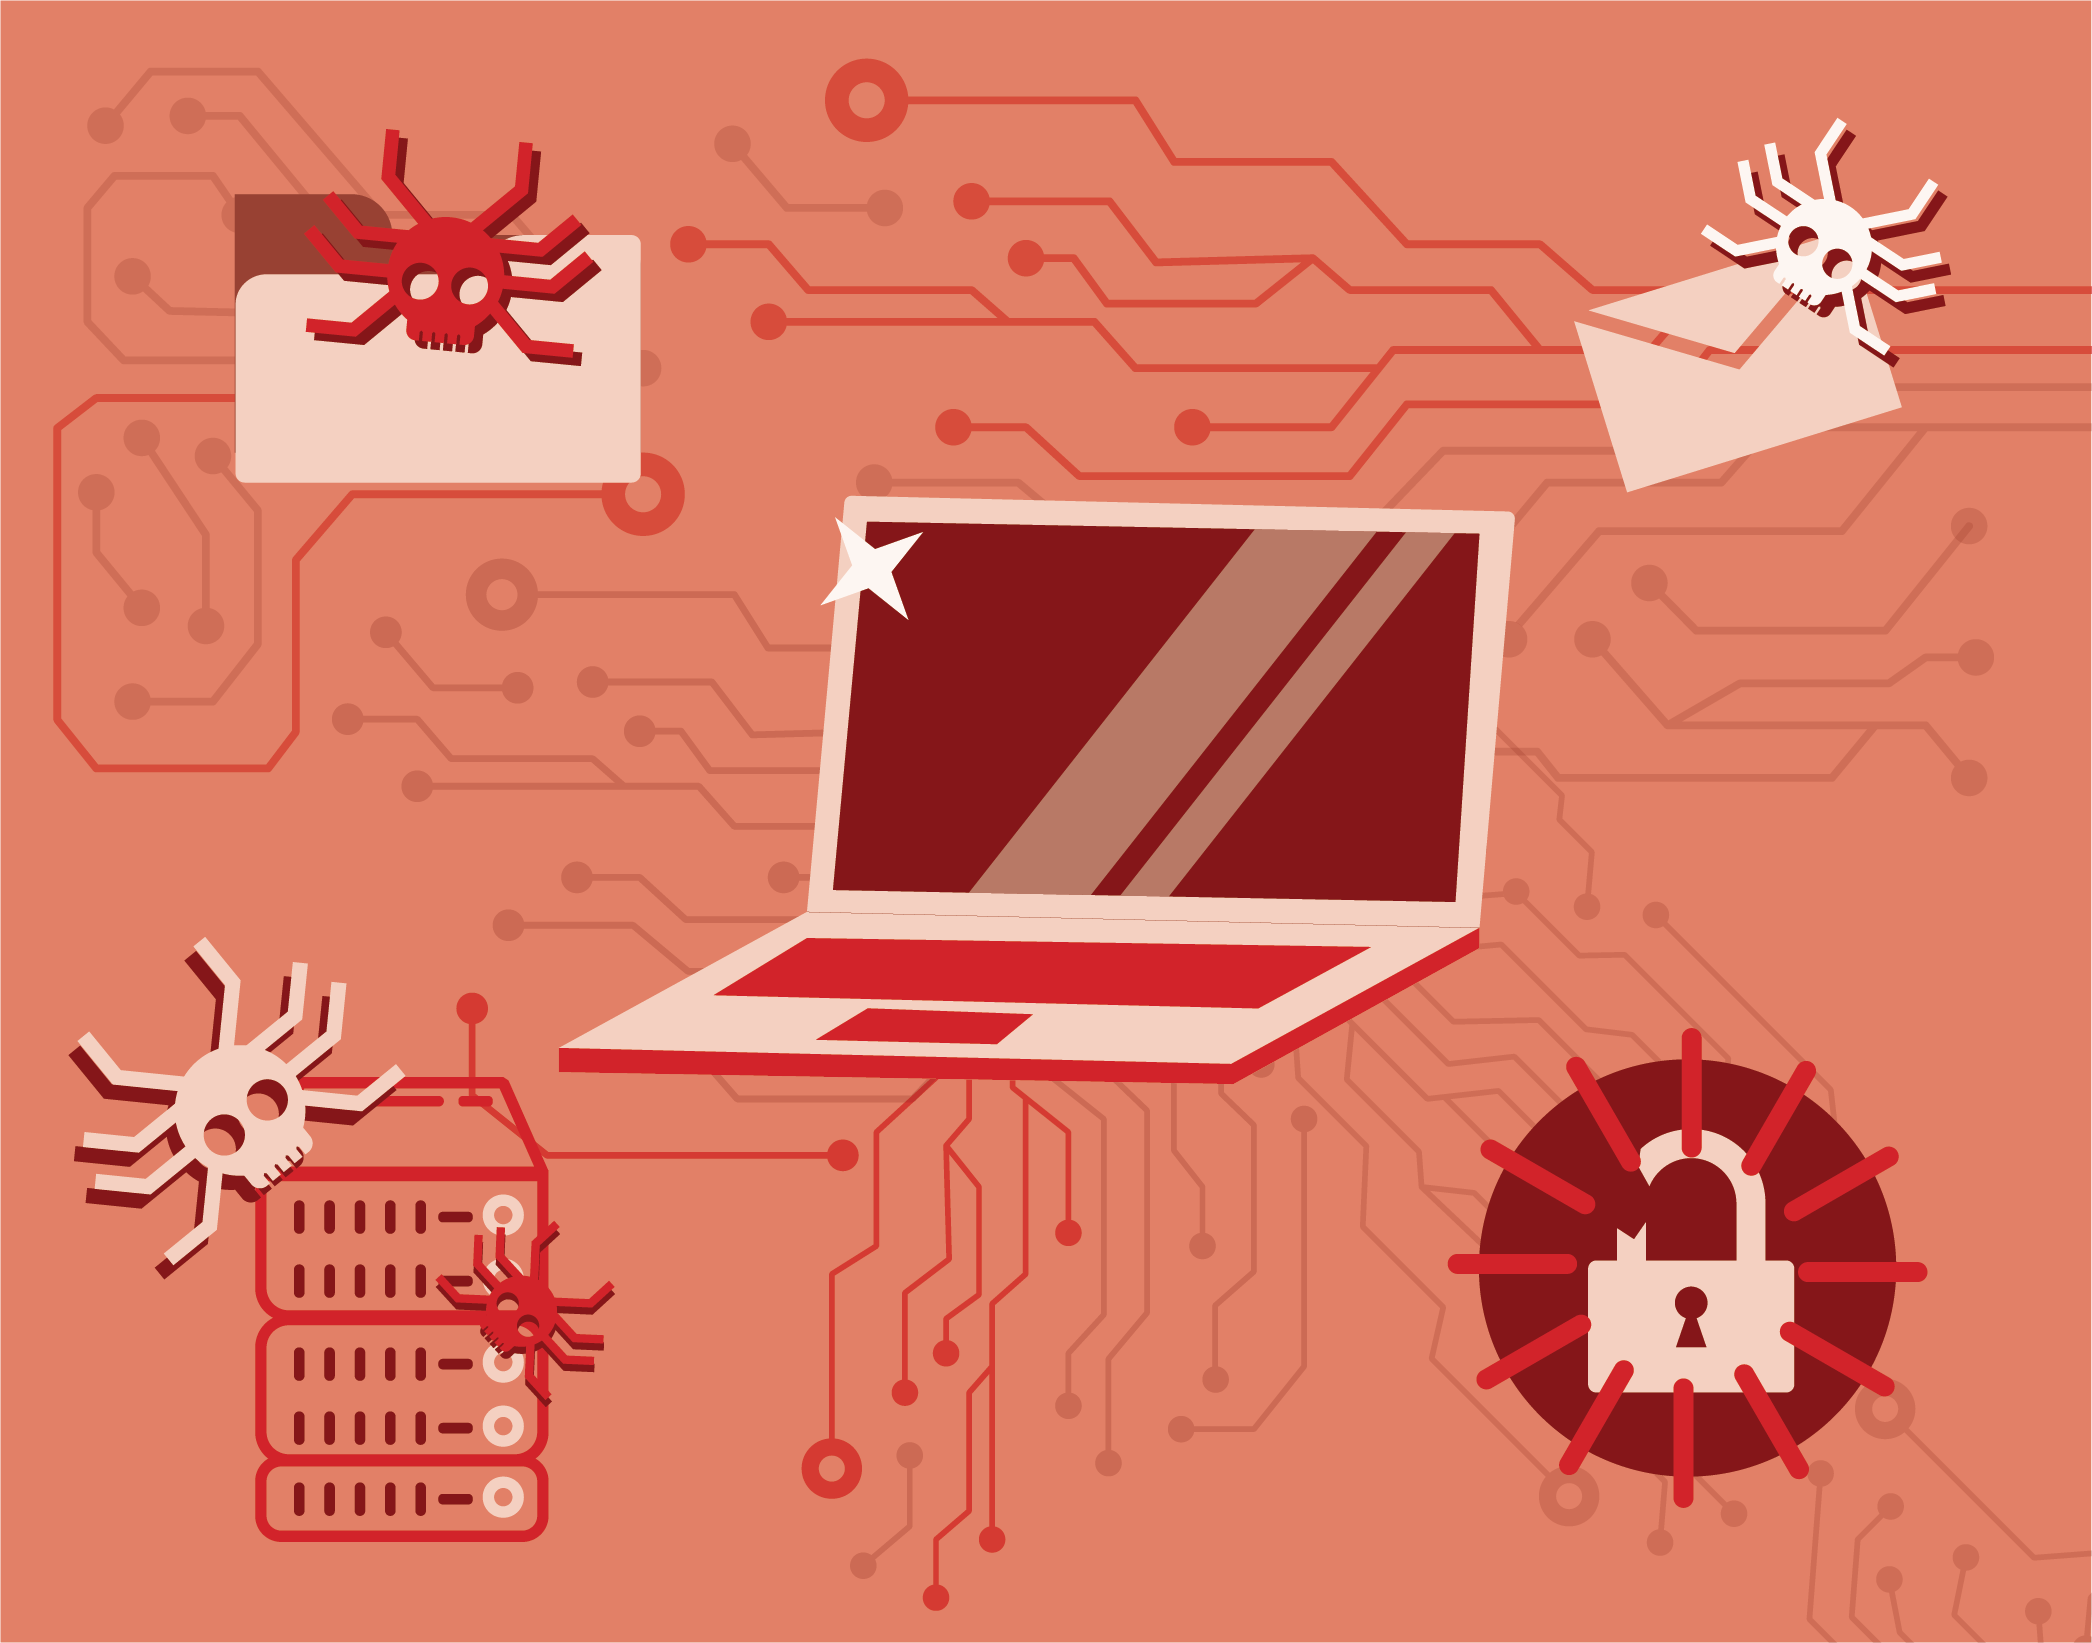 Rootkits: The Malware to Be Aware of